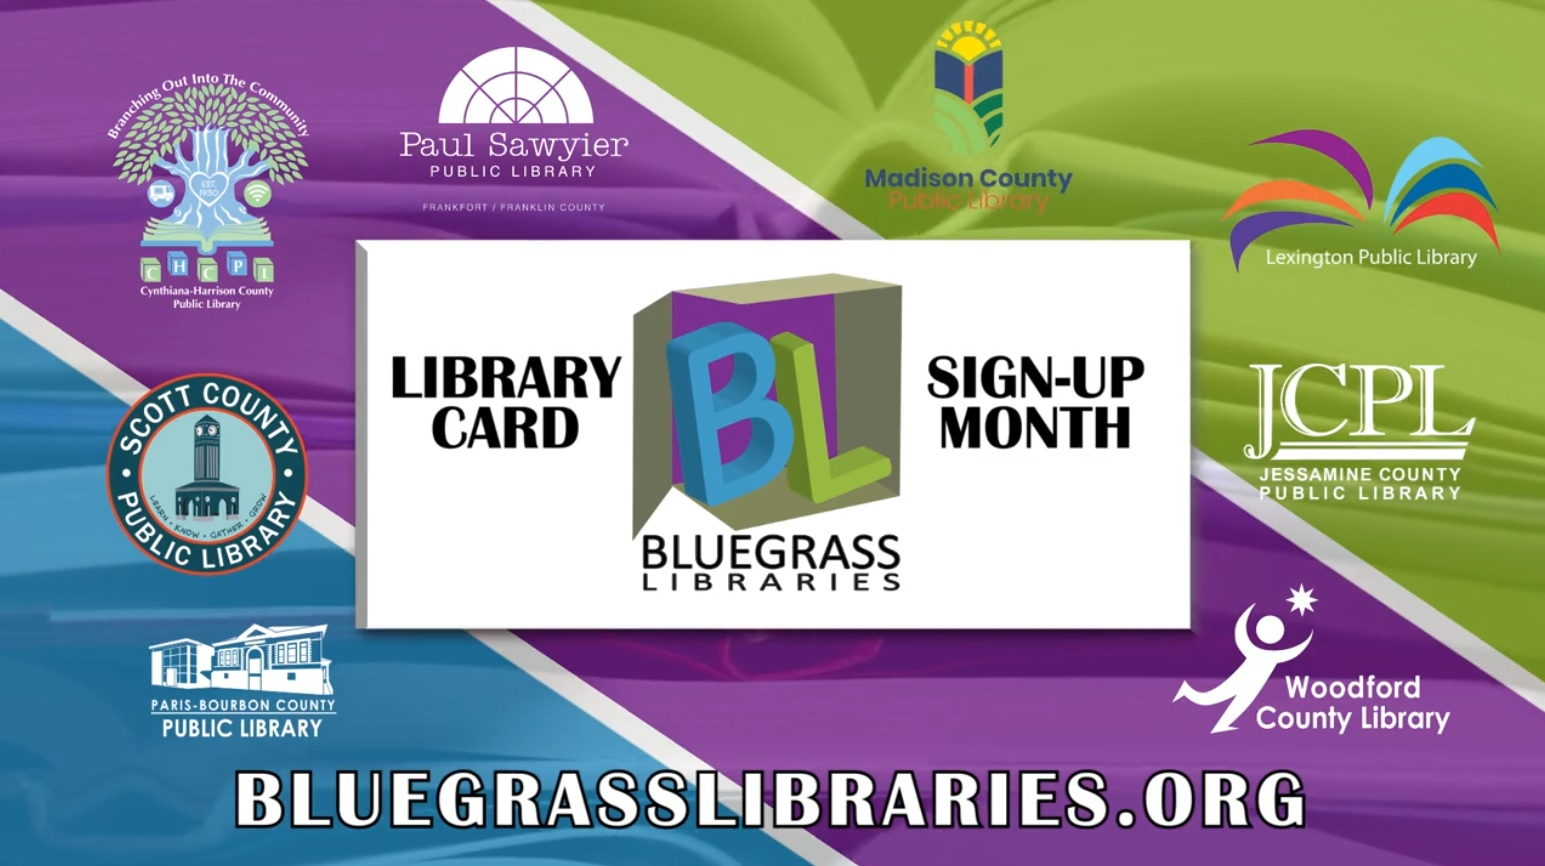 Bluegrass Libraries Library Card Sign Up Month Promo Image